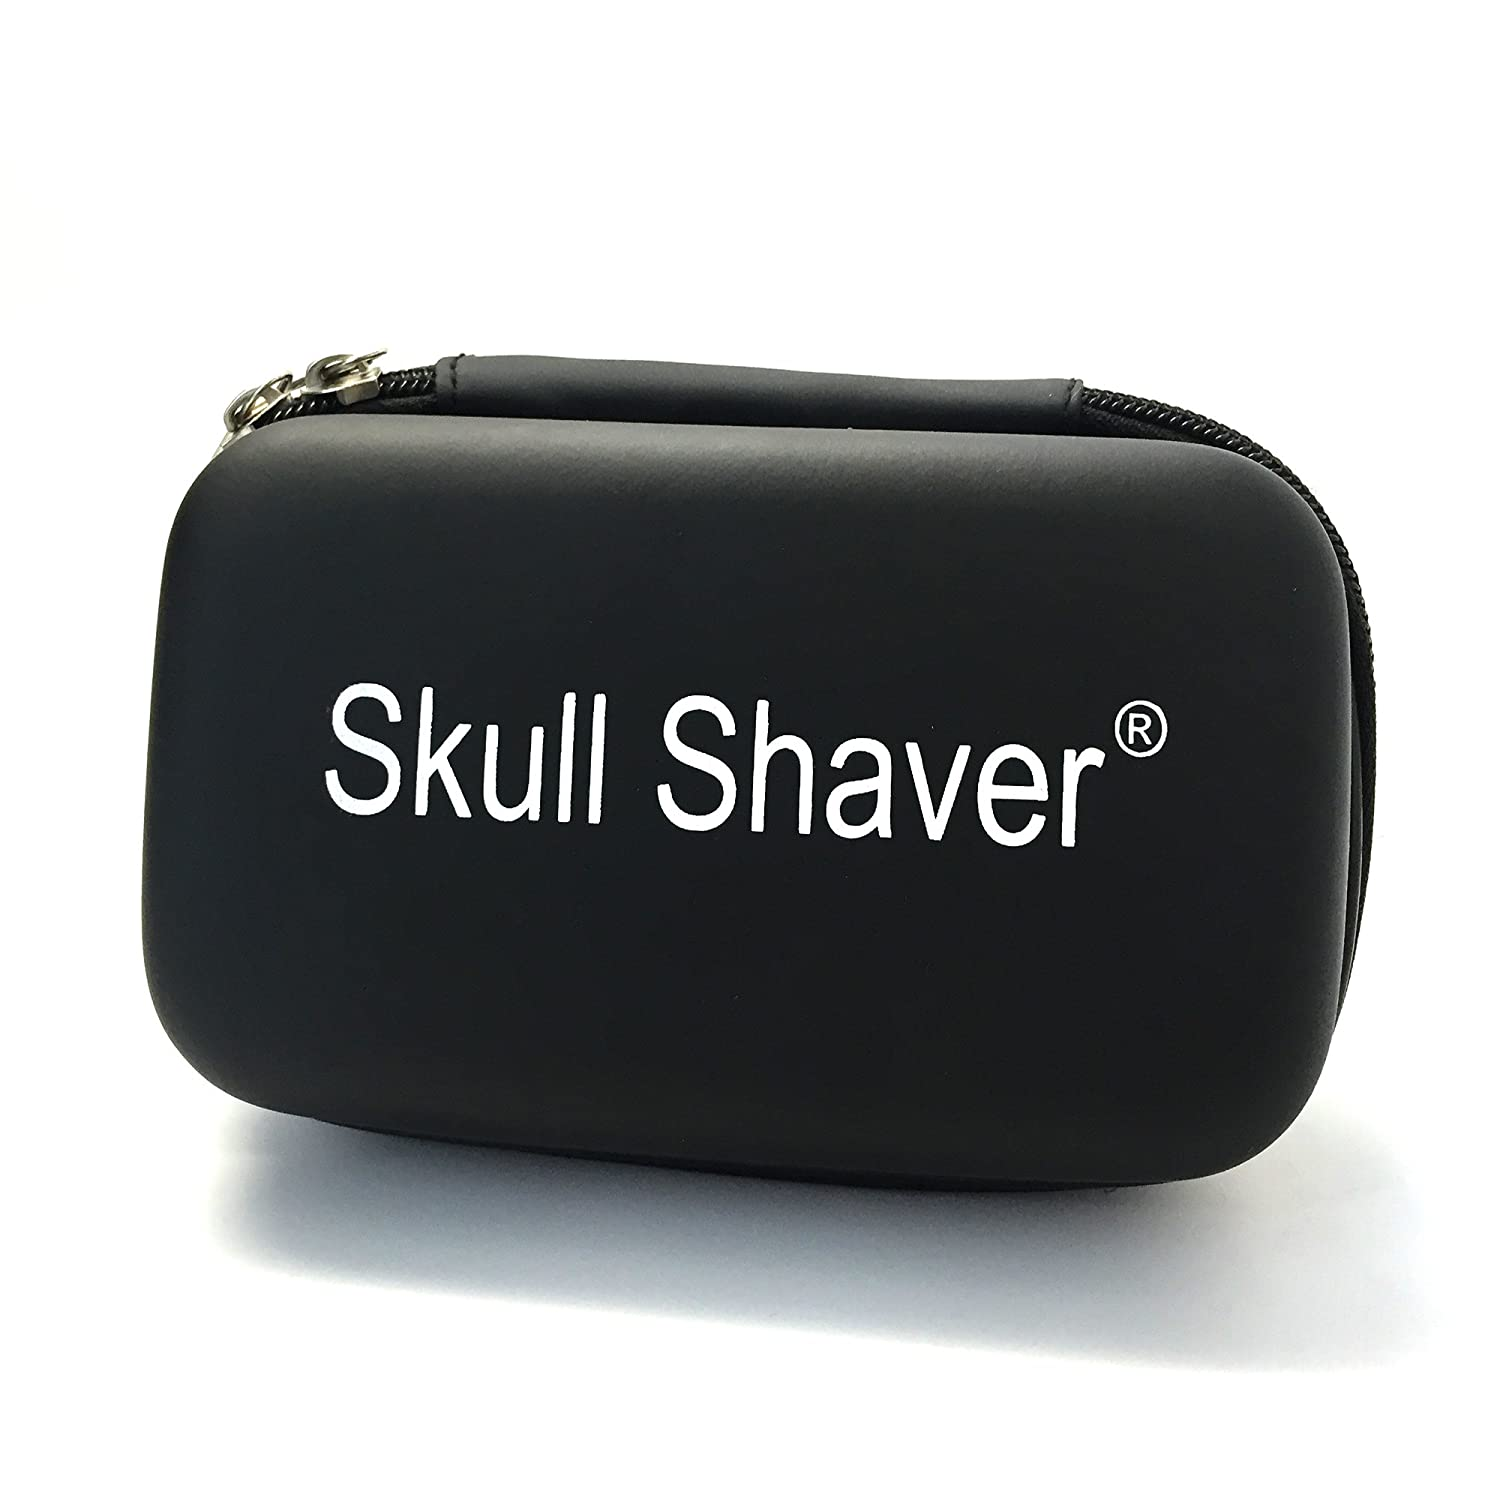 Skull Shaver Travel Case MR-B5IW-BZ2Z